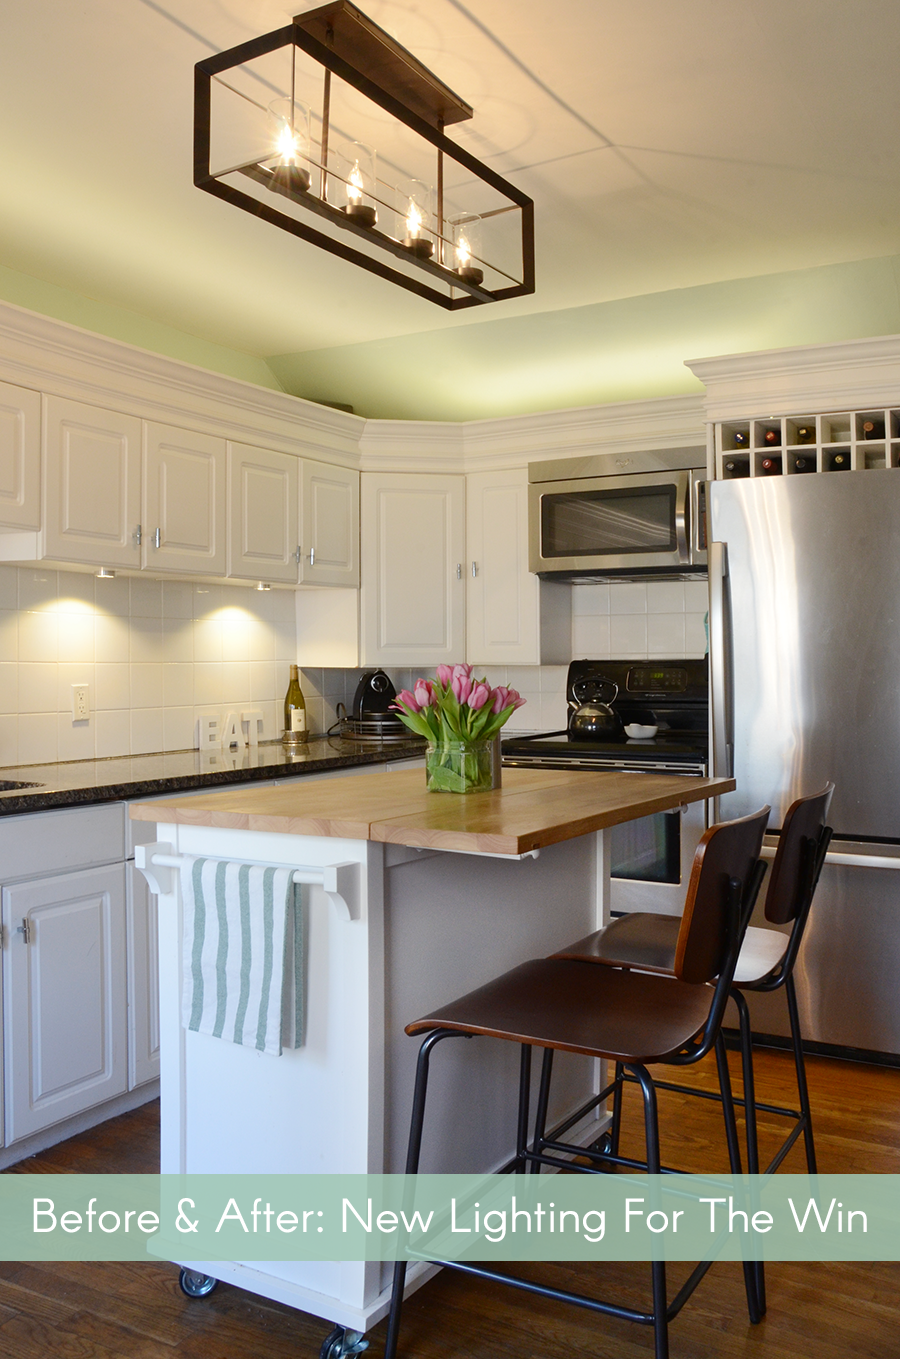 Before U0026 After: New Kitchen Lighting For The Win /// By Design Fixation